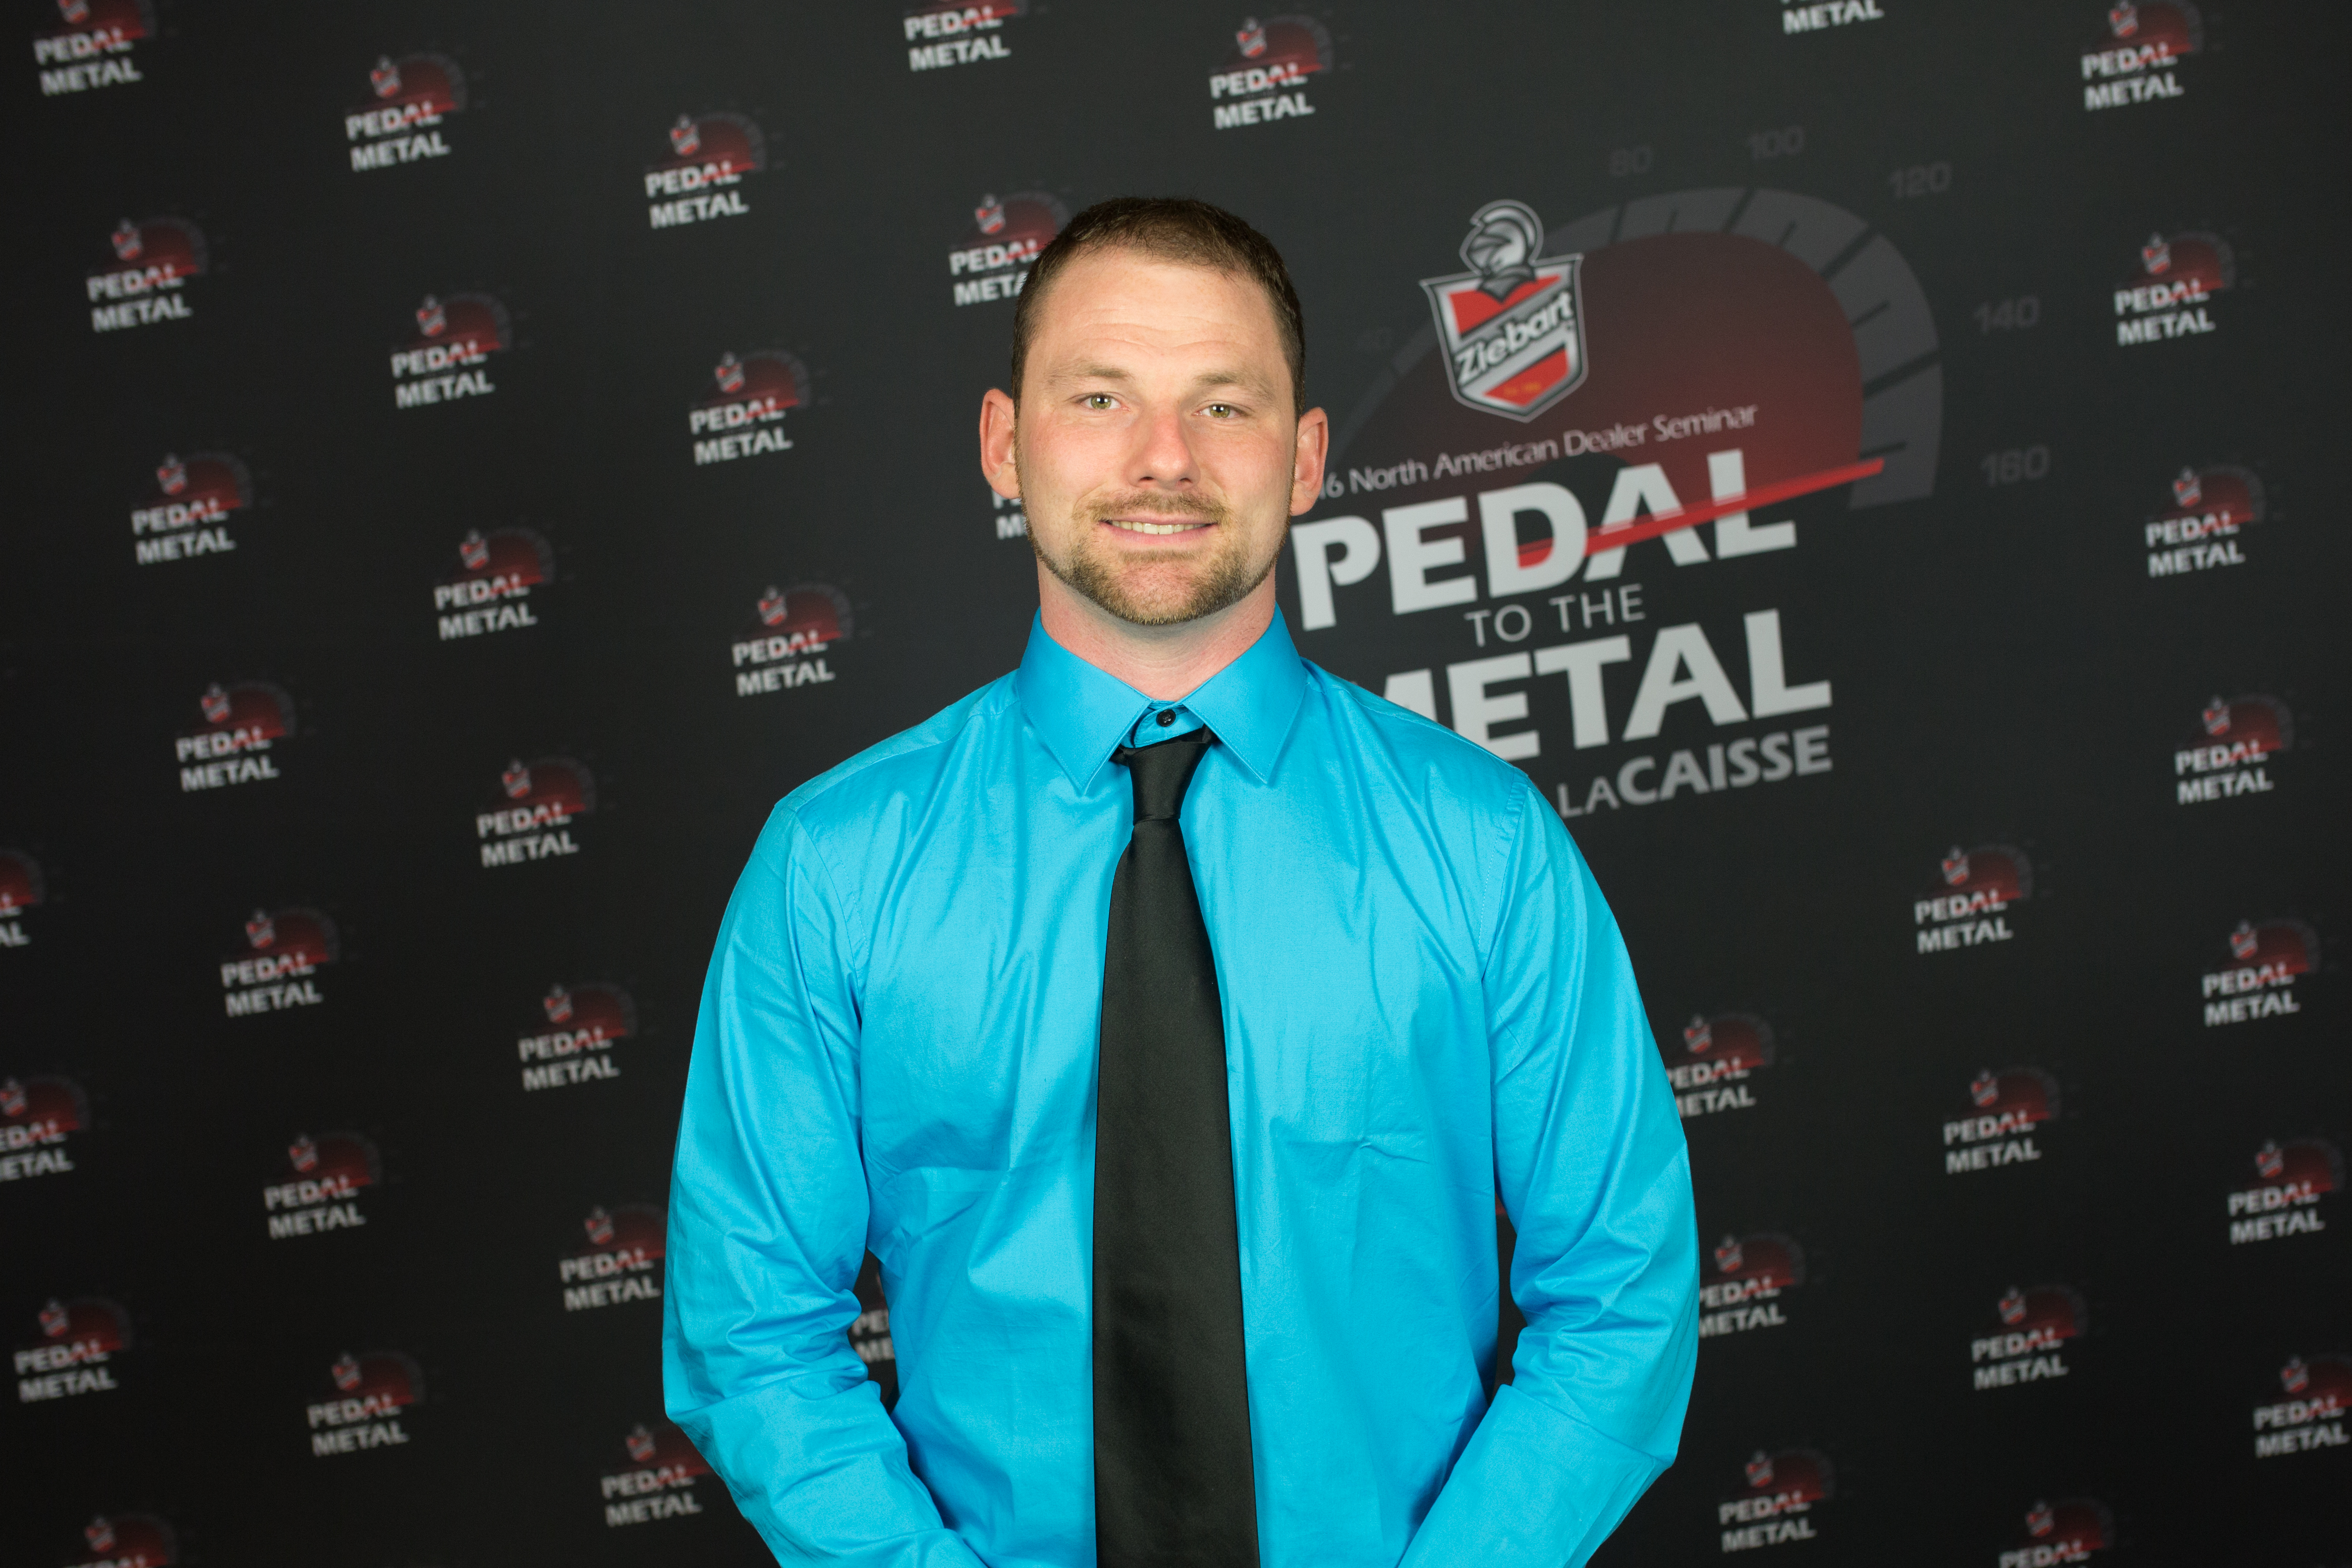 Anthony Mattia, Owner, Ziebart of Sterling Hts MI